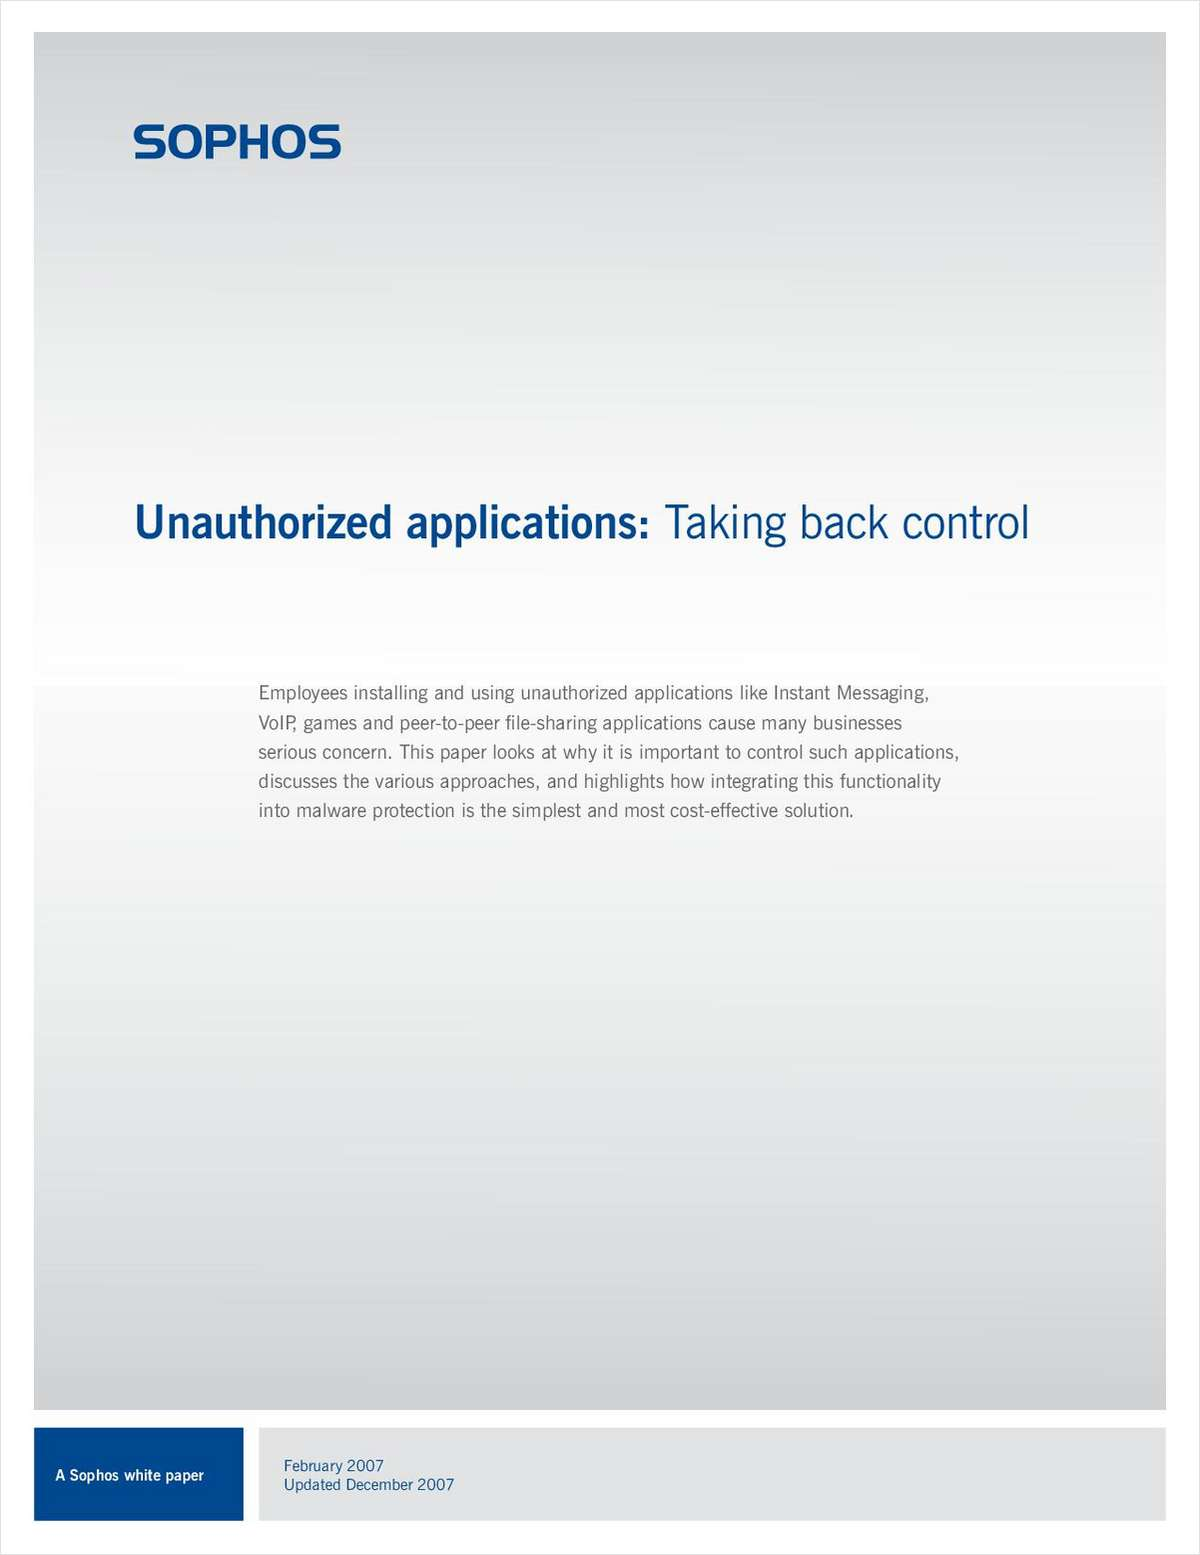 Unauthorized Applications: Taking Back Control